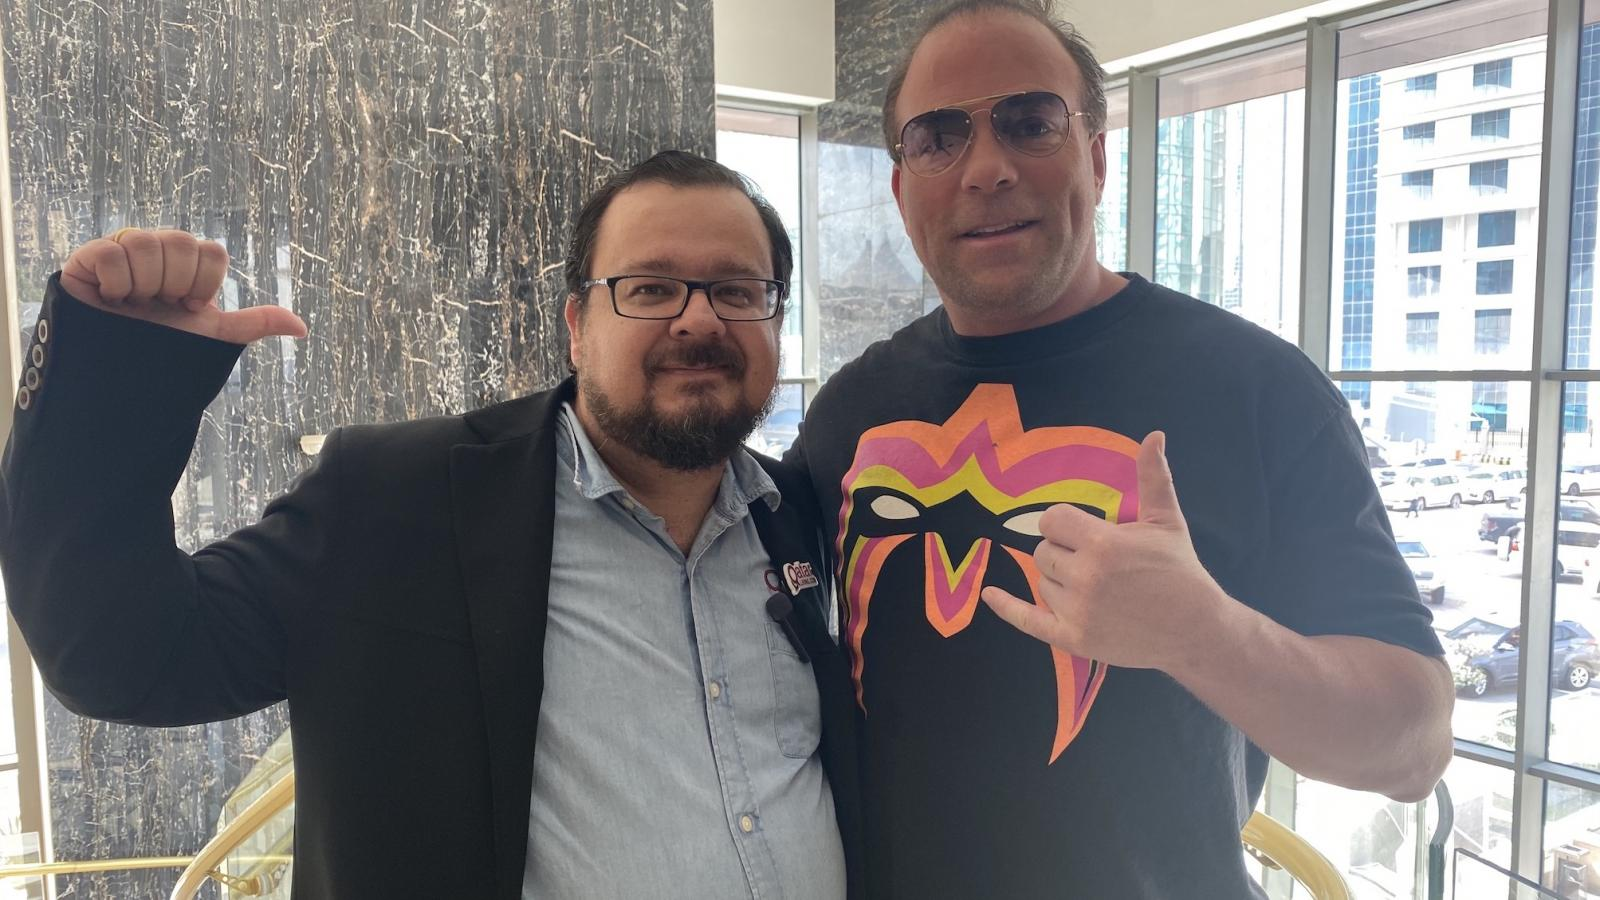 WATCH: Interview with wrestling legend Rob Van Dam